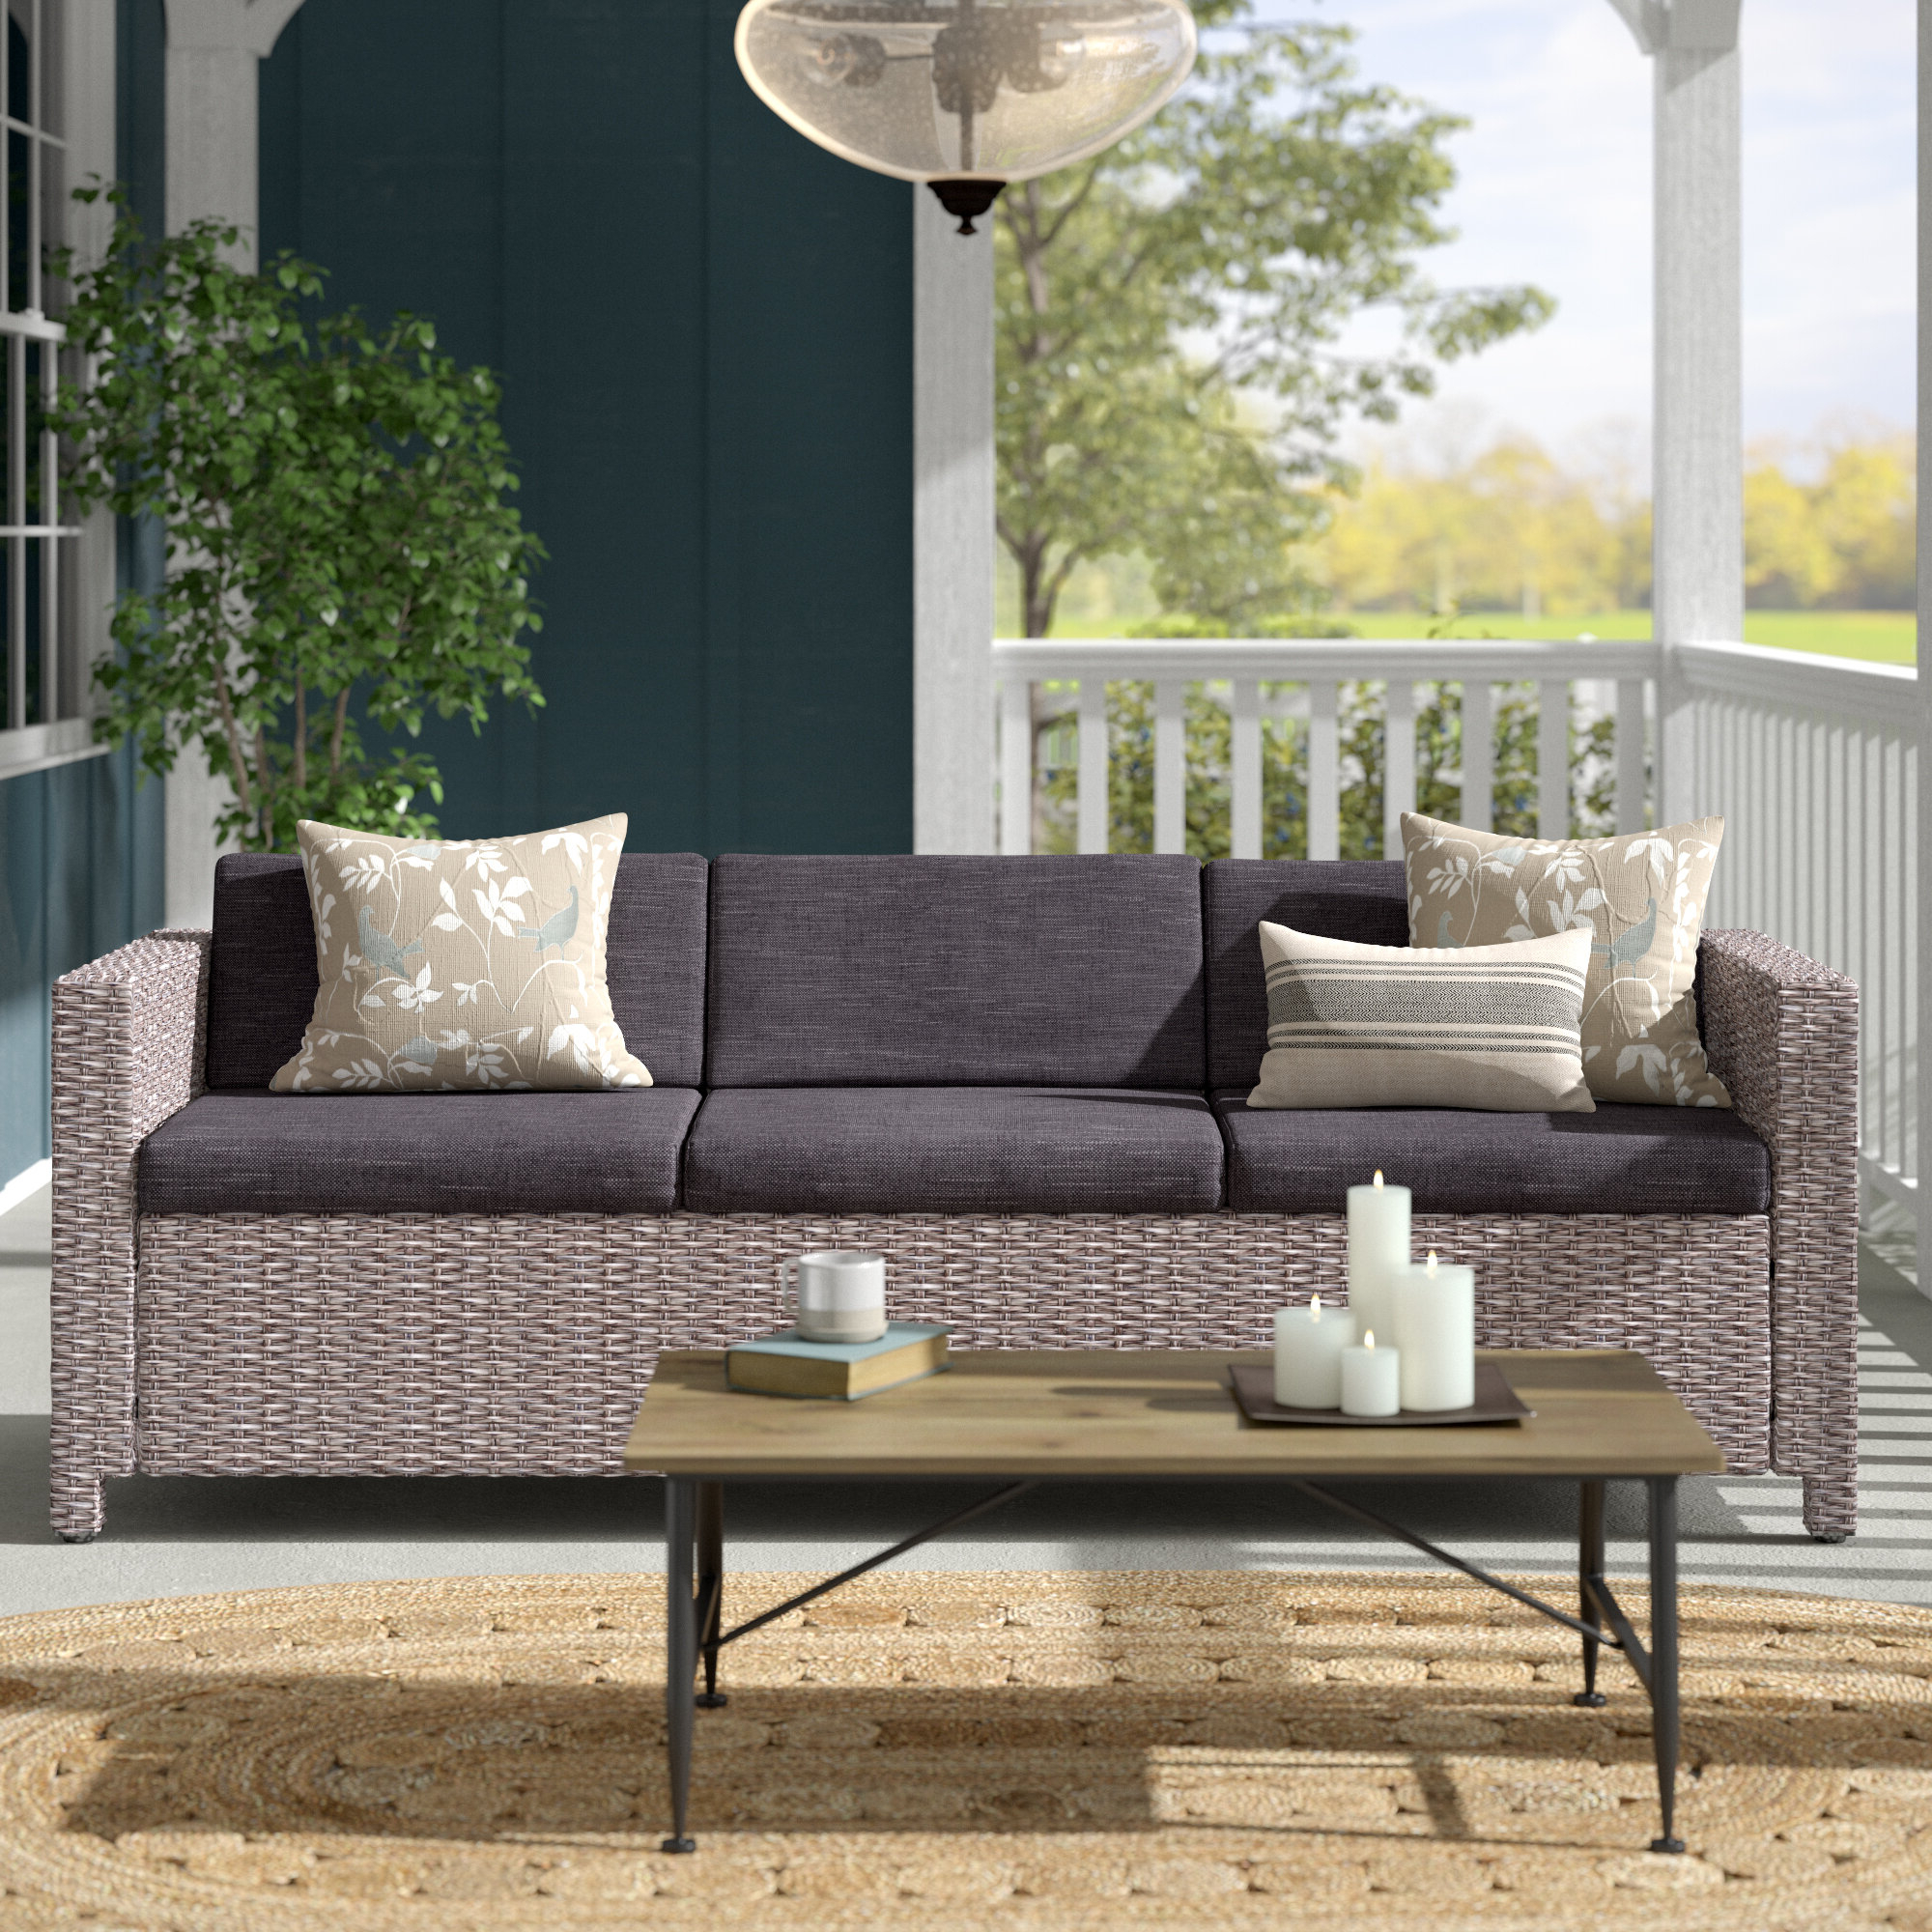 Wade Logan Furst Outdoor Patio Sofa With Cushions & Reviews Inside Latest Furst Patio Sofas With Cushion (View 19 of 20)